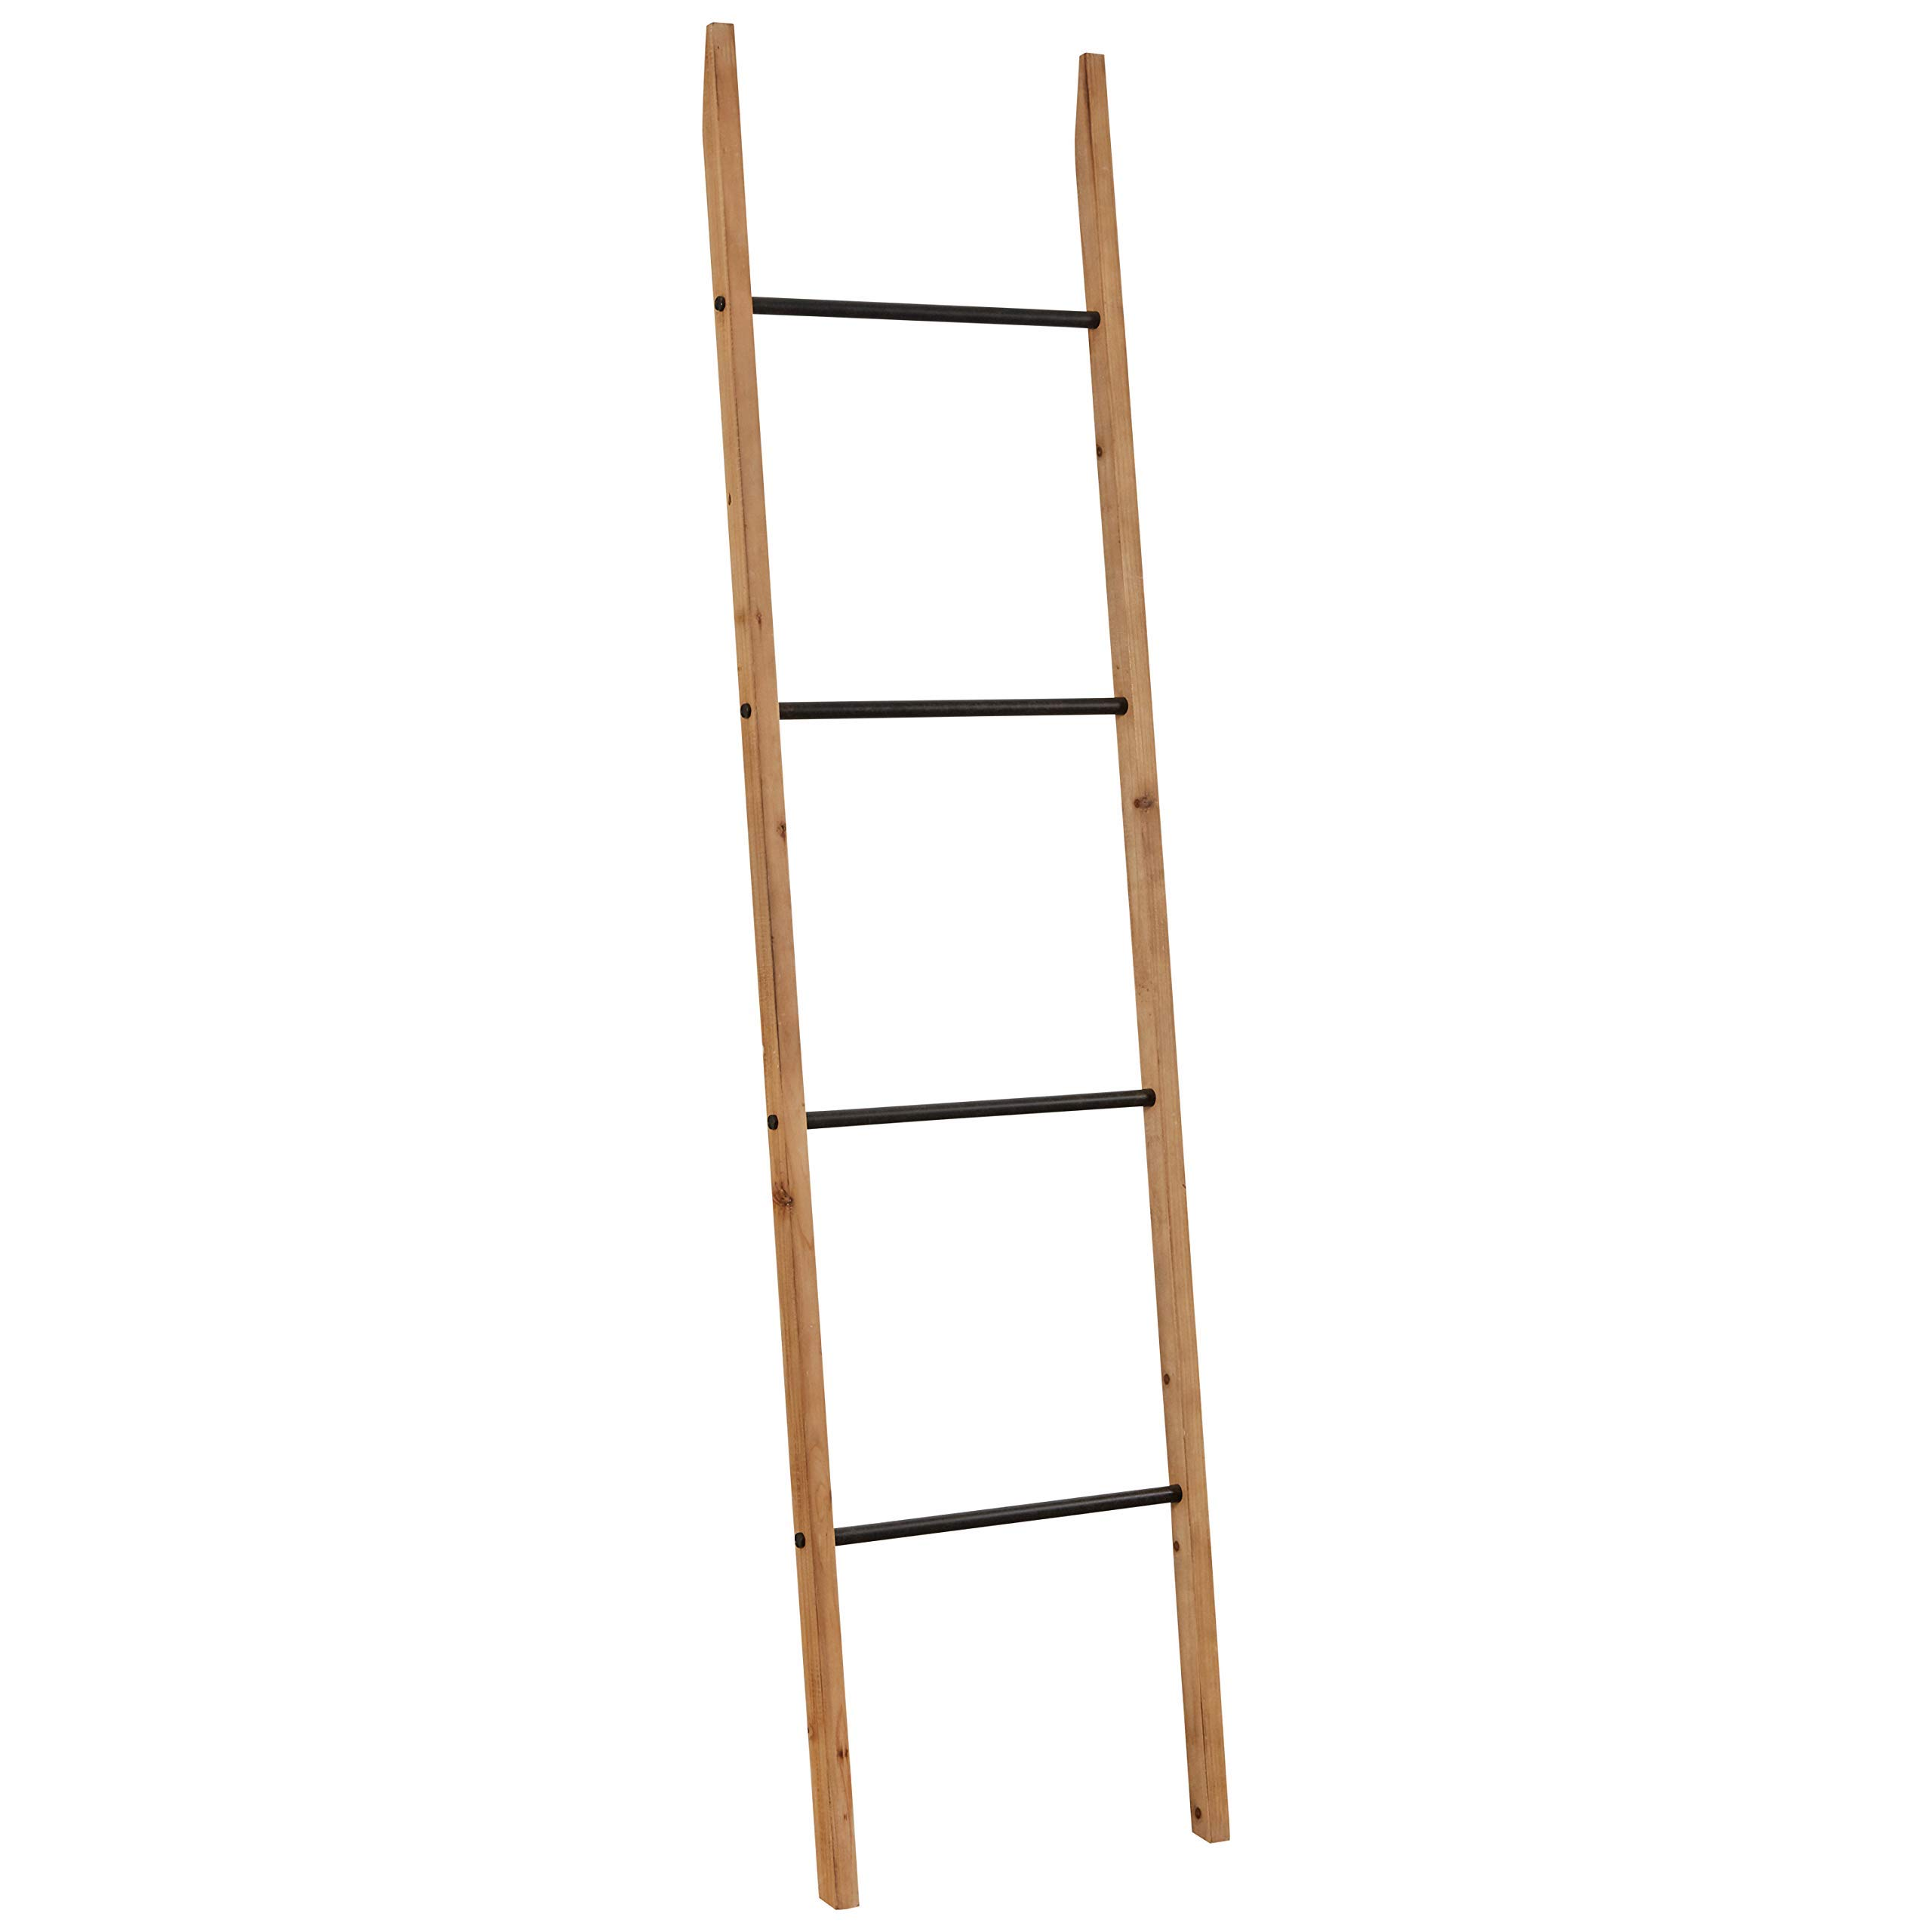 Rivet Contemporary Fir Decorative Blanket Ladder with Iron Rungs - 71.65''H, Black and Natural Wood (Renewed)